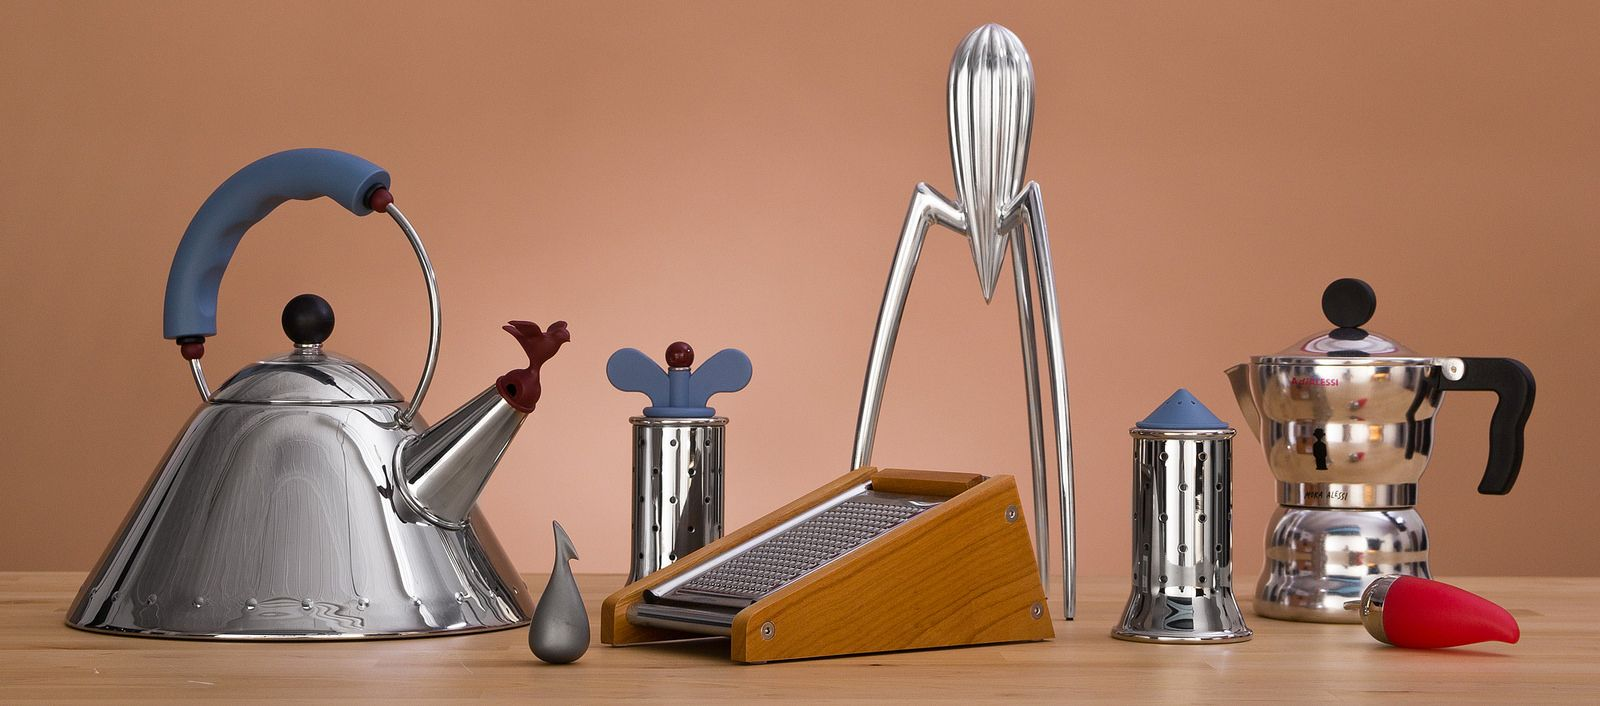 Alessi At Local Root  Alessi Cheese Grater And Grater Extraordinary Alessi Kitchen Decorating Inspiration